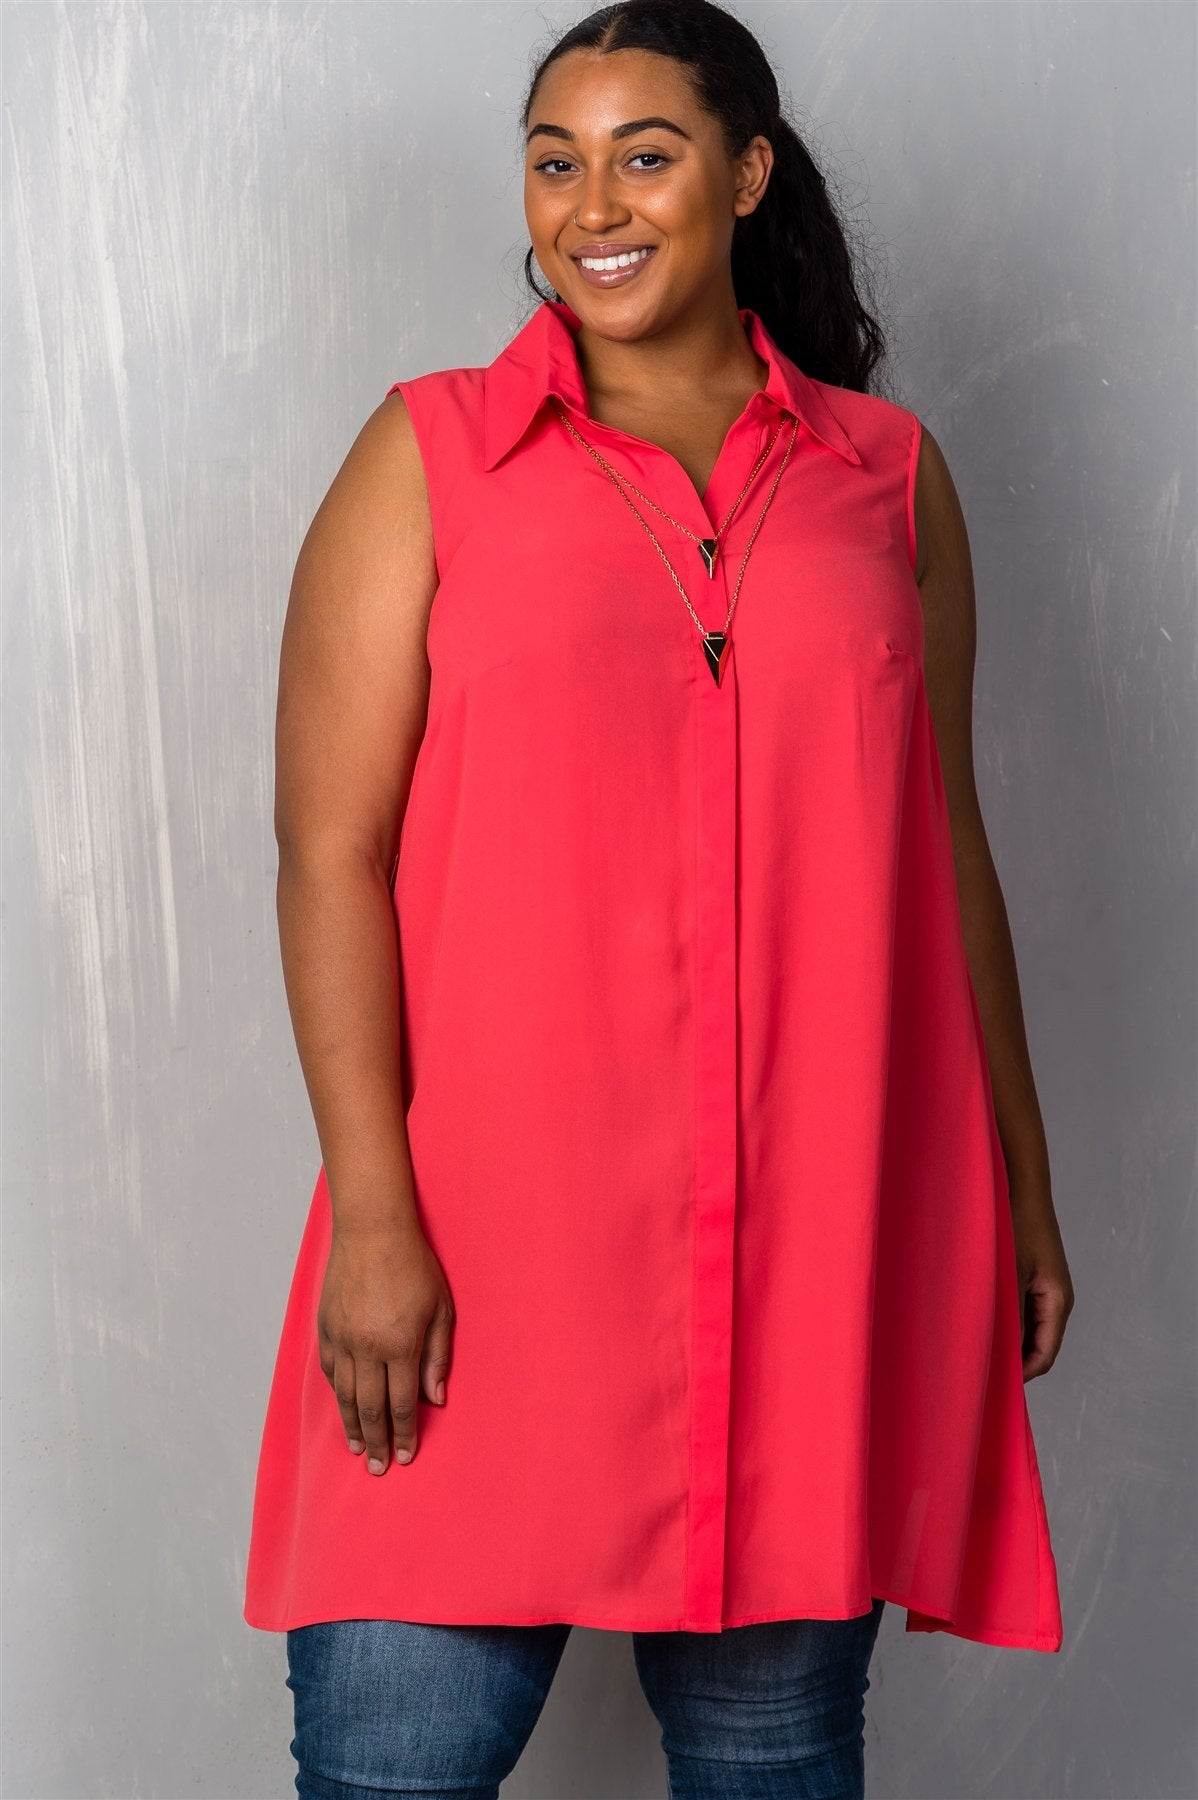 Ladies fashion plus size  hidden button down closure v neckline chic necklace included shirt collar.